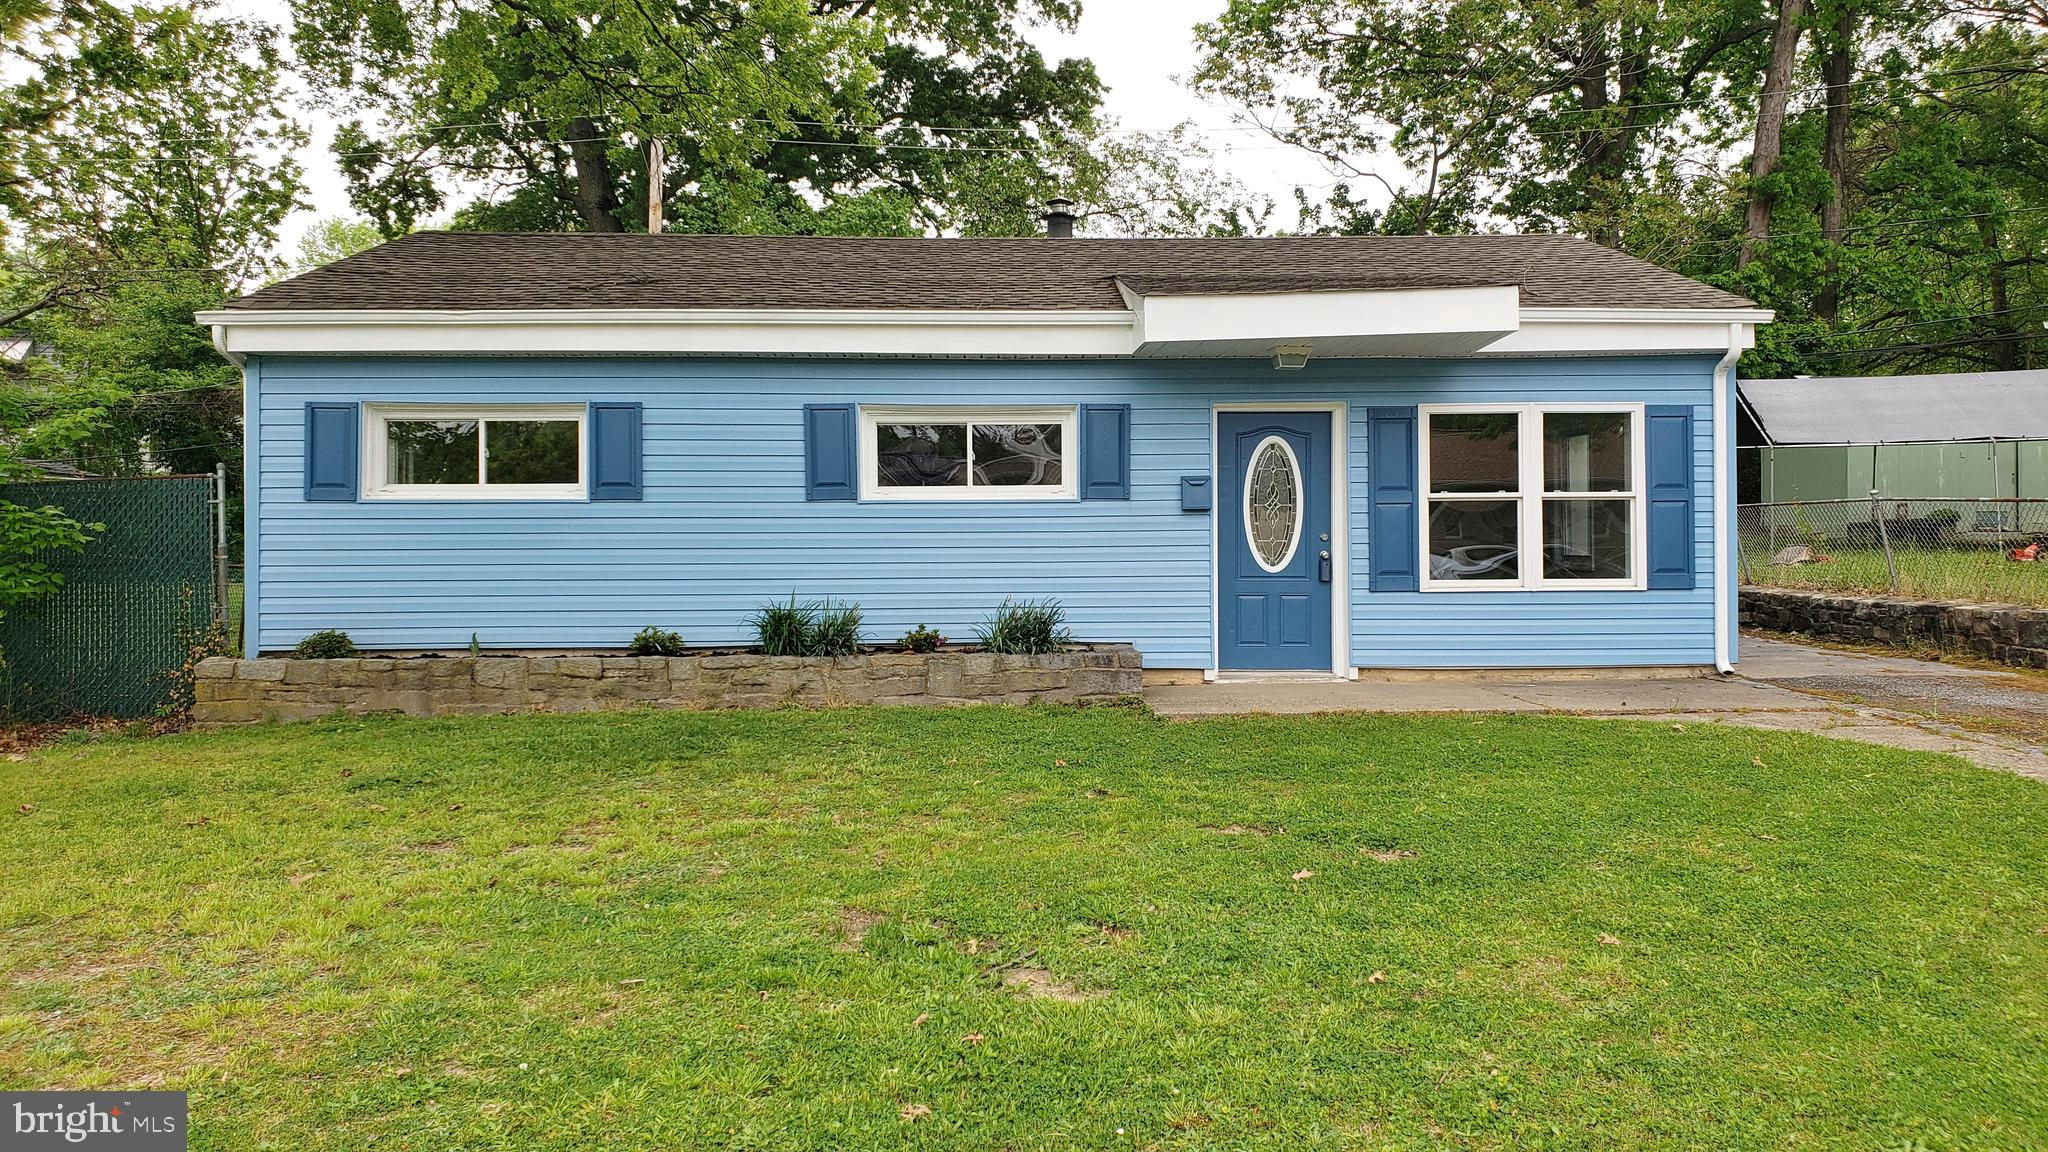 Newly renovated 3 Bed / 1 Bath single family Ranch Home in Dunleith. This home features new flooring